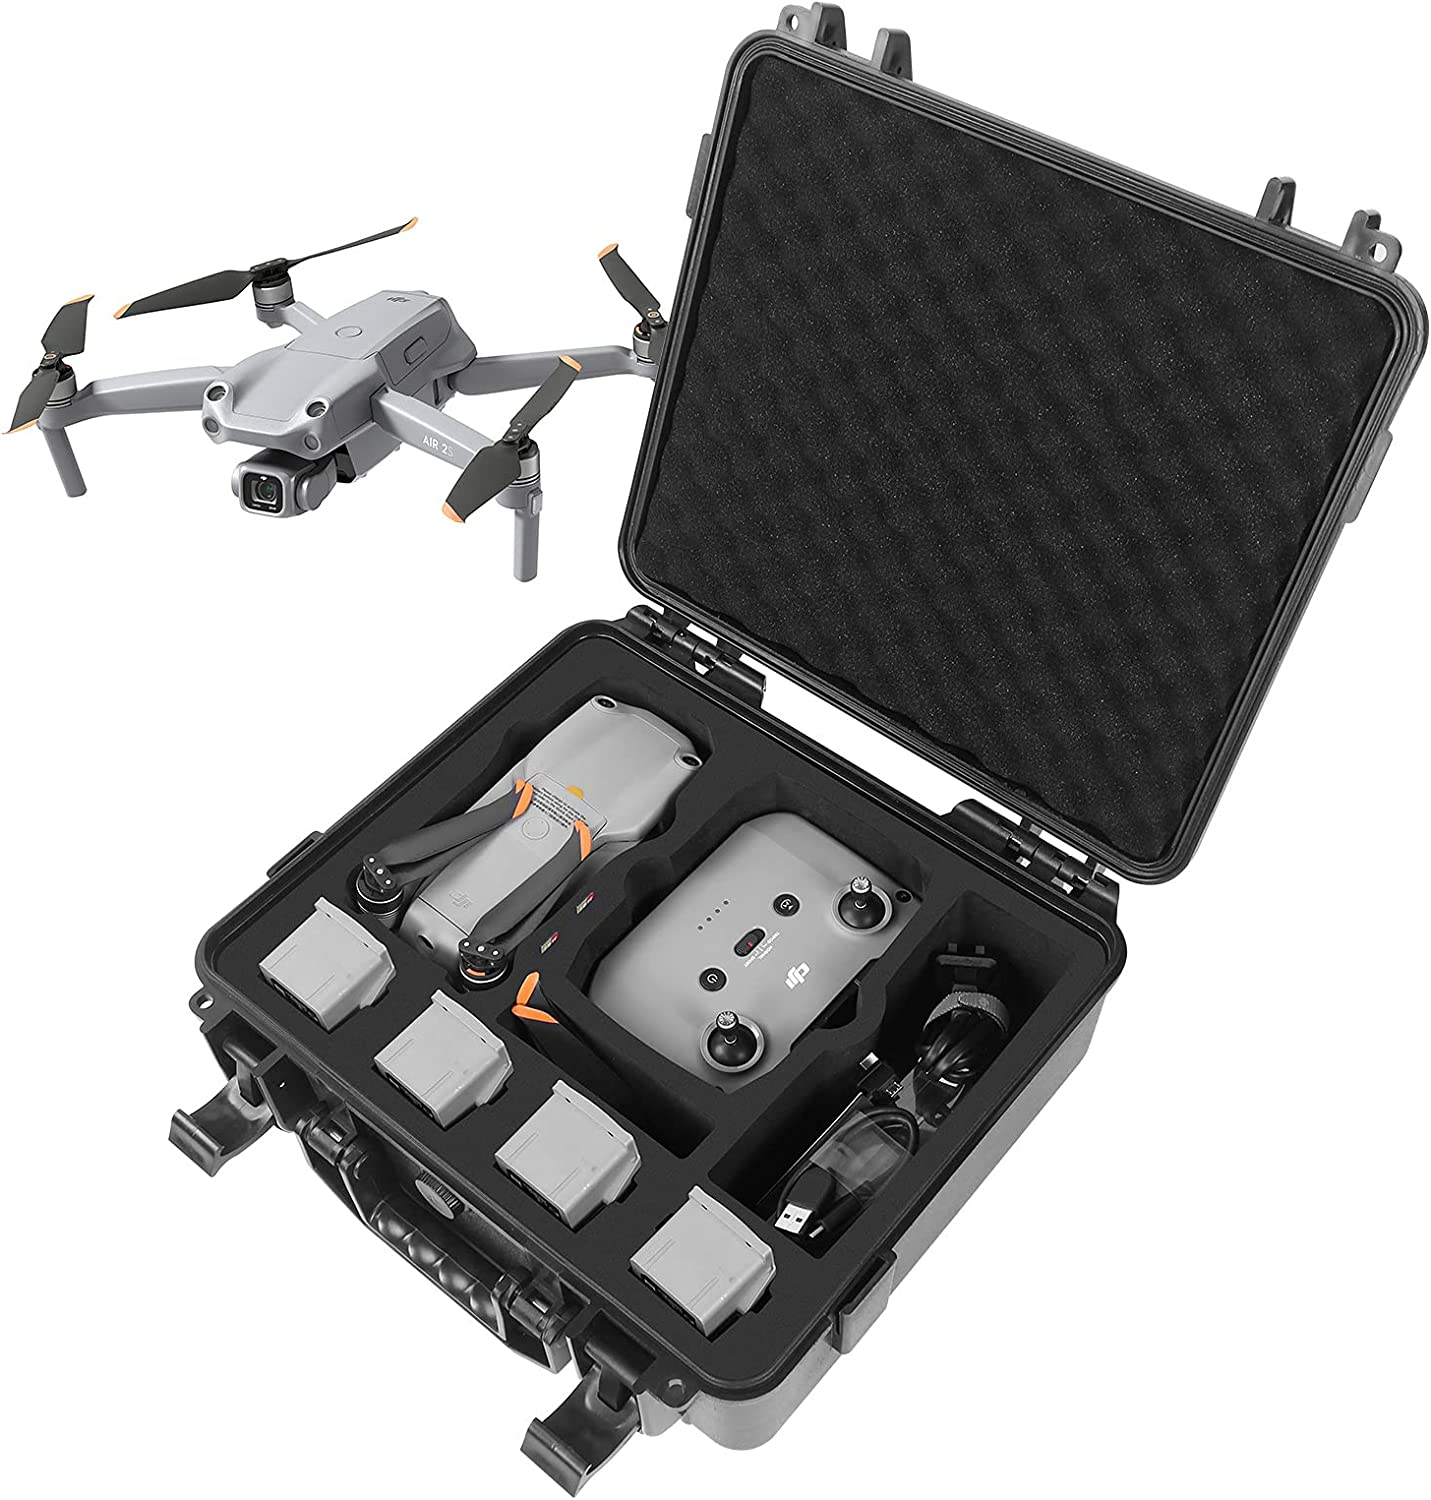 Smatree Waterproof Hard Carrying Case Sale special price Air DJI with Oakland Mall Compatible 2S